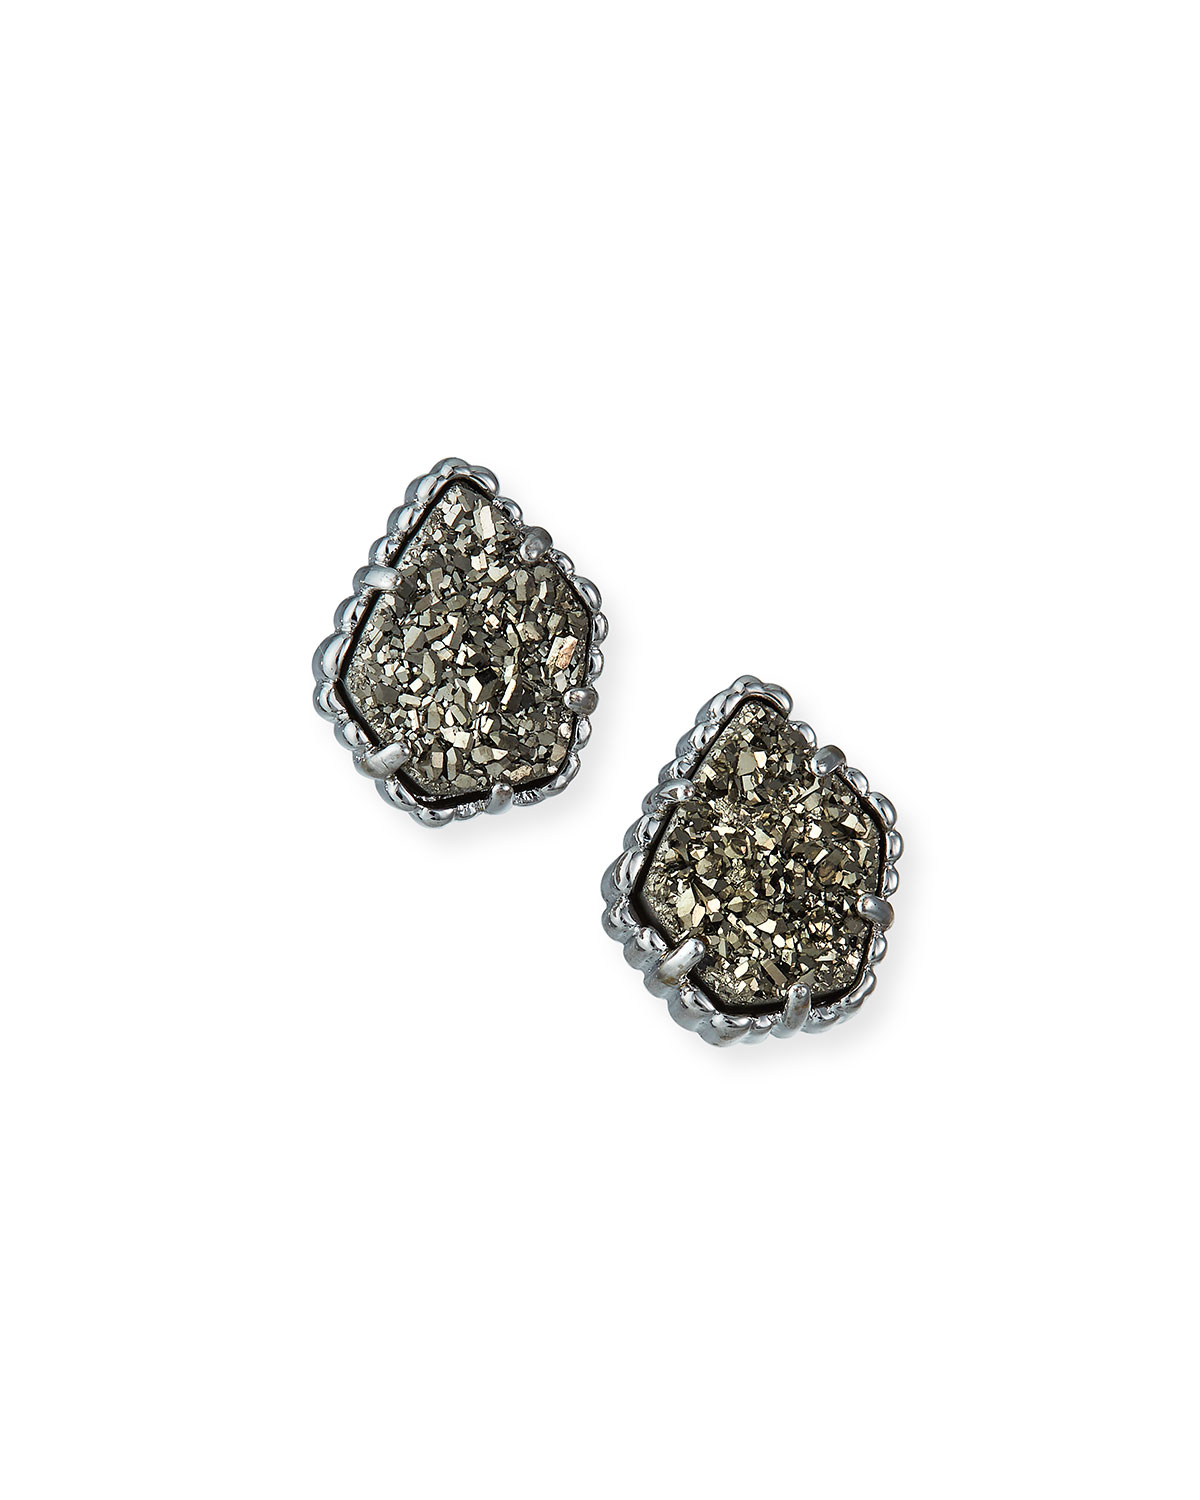 Kendra Scott Tessa Druzy Button Earrings